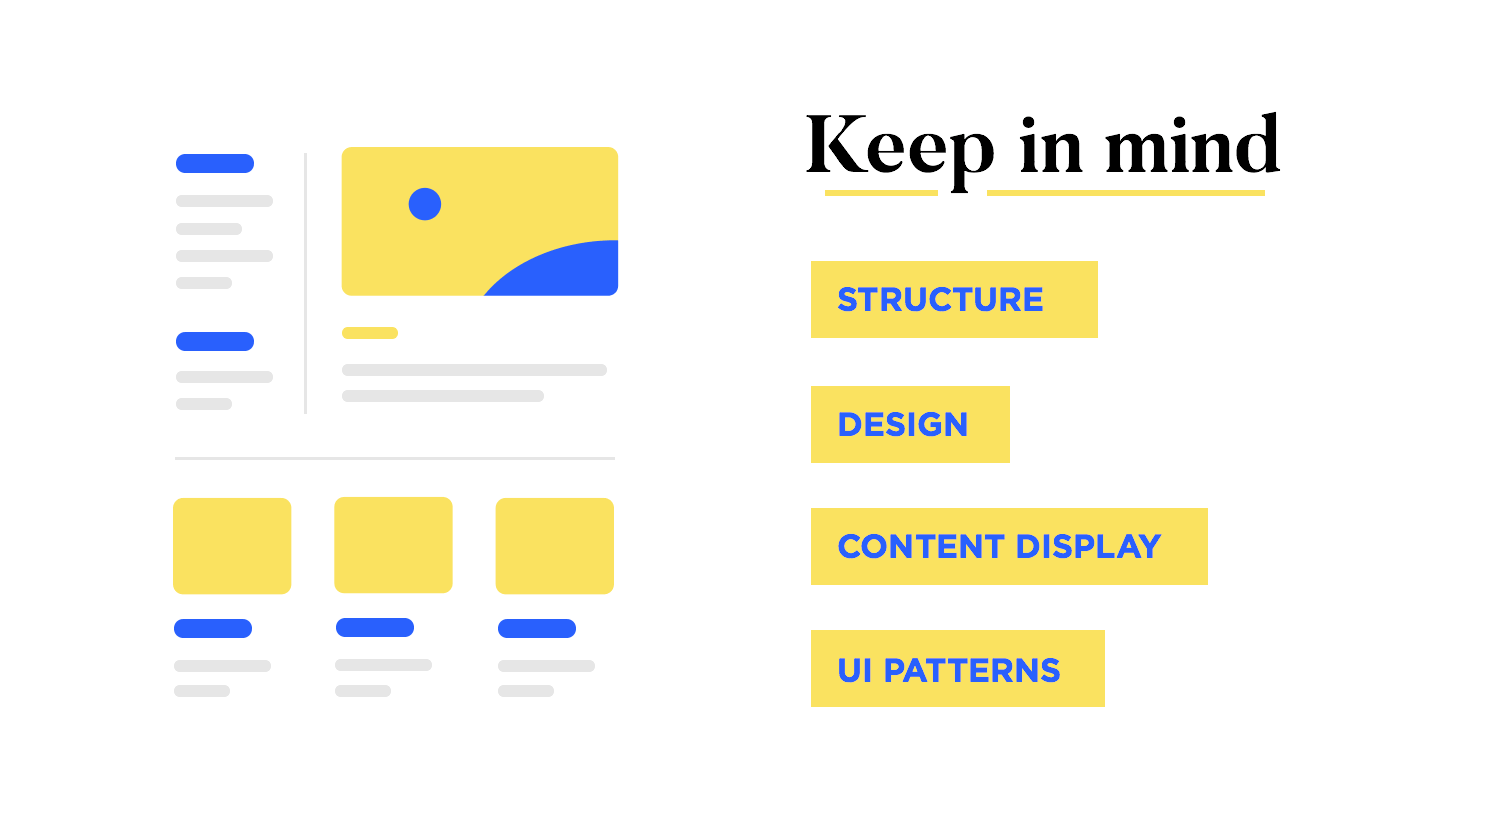 the role of ocontent structuring in web design